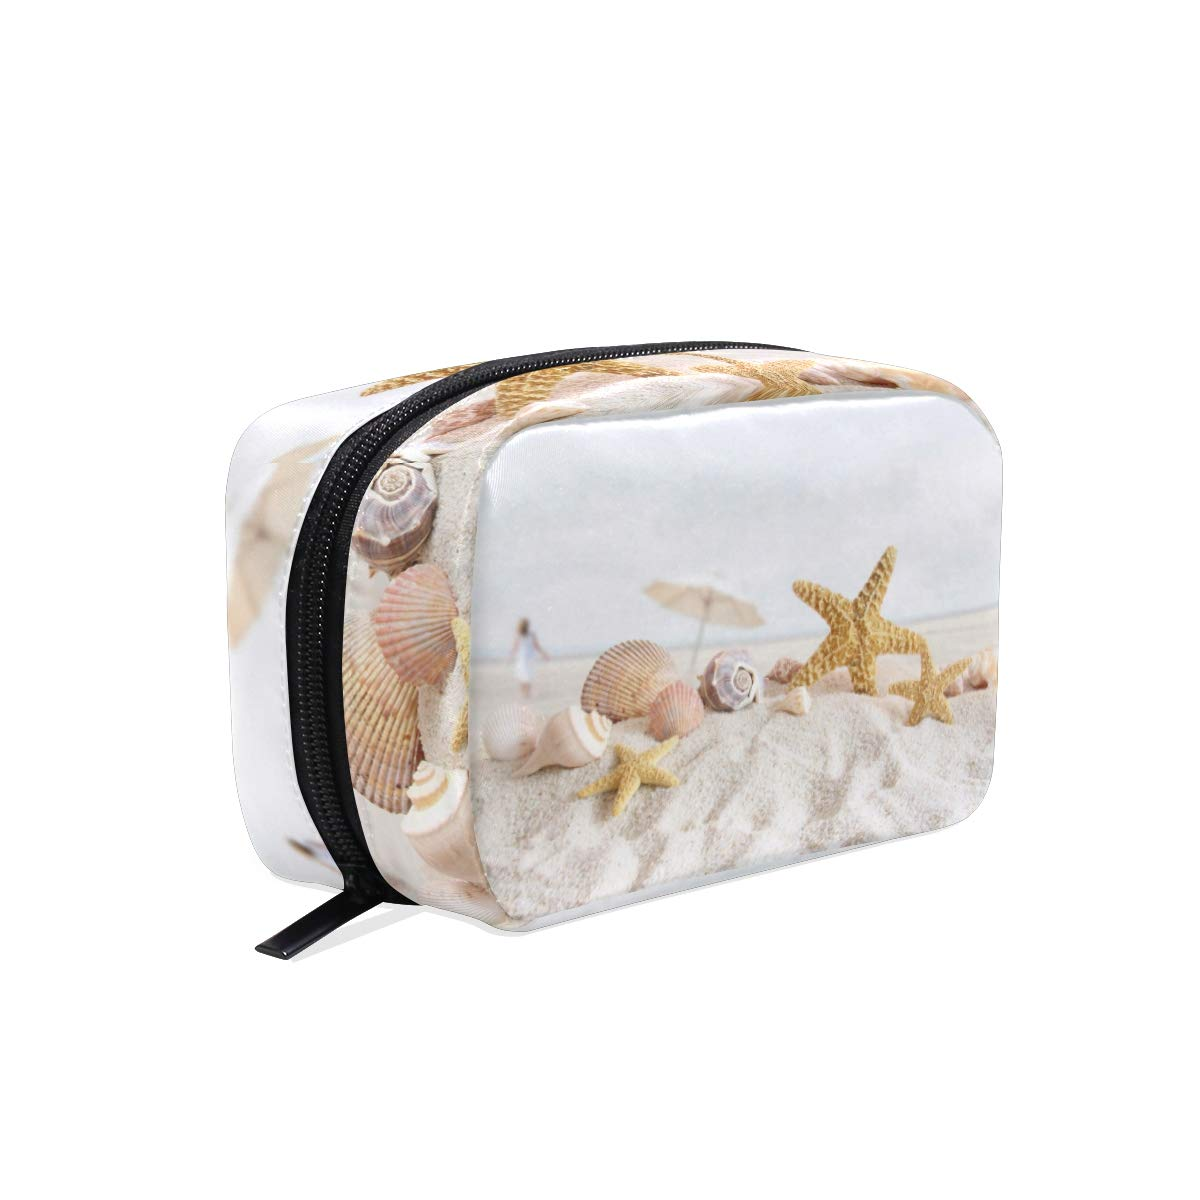 Makeup Bag Portable Travel Cosmetic Starfish And Seashells Train Case Toiletry Bag Organizer Accessories Case Tools Case for Beauty Women